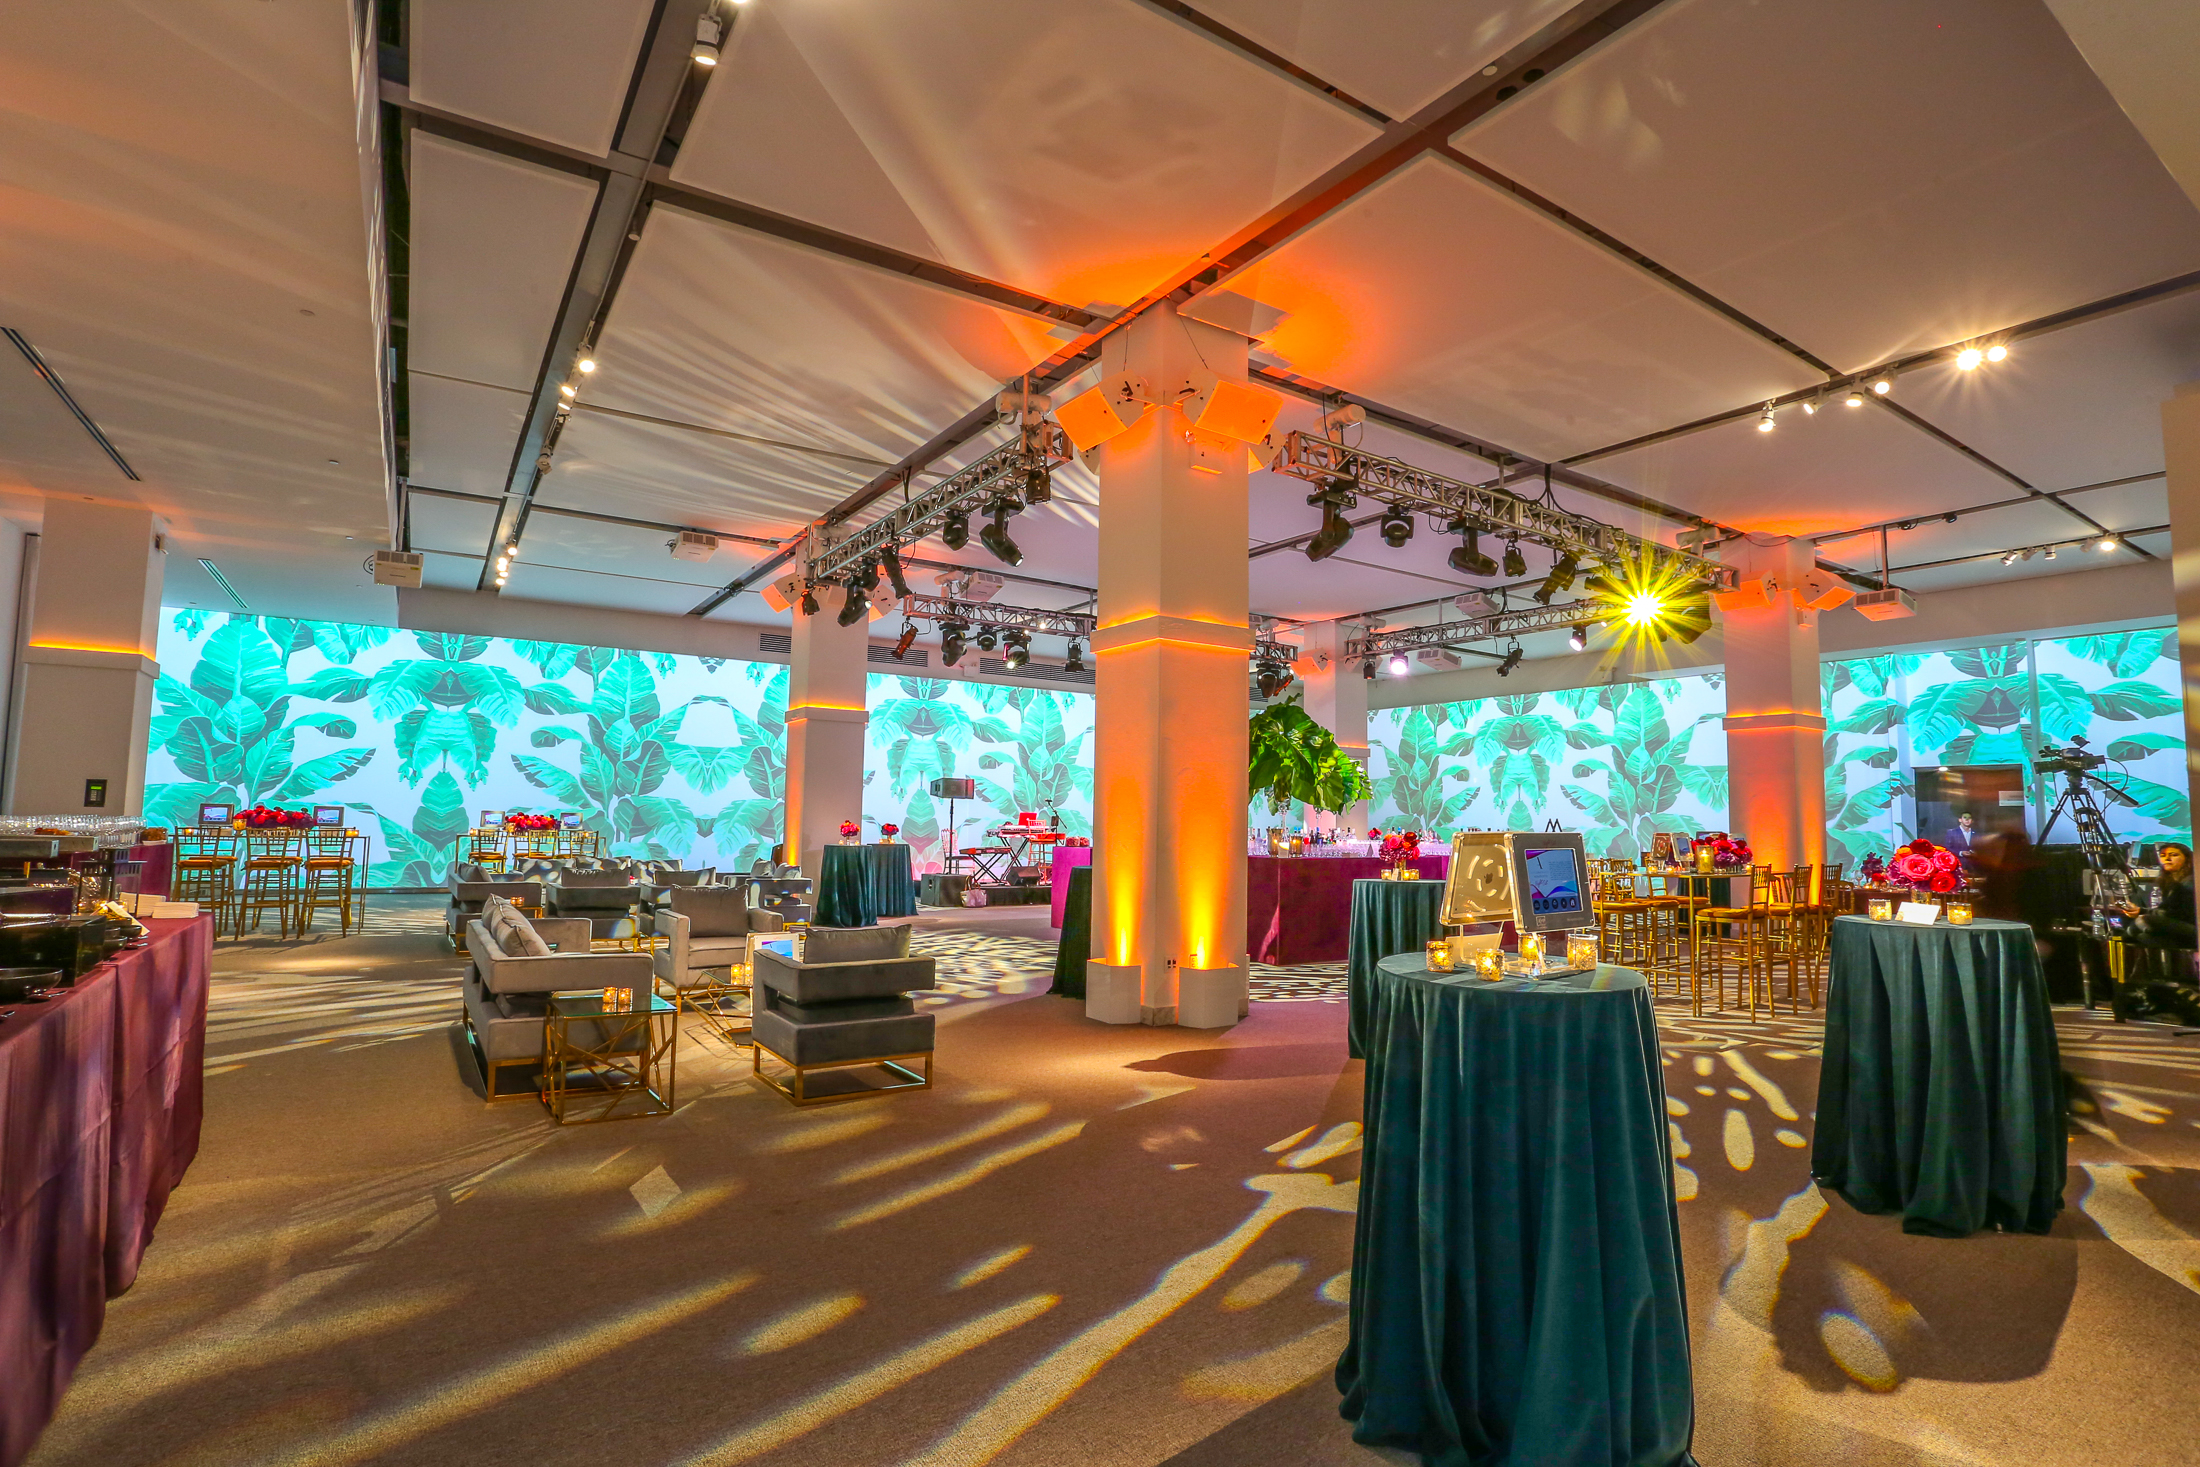 Image of Event Setup at CNVS Events